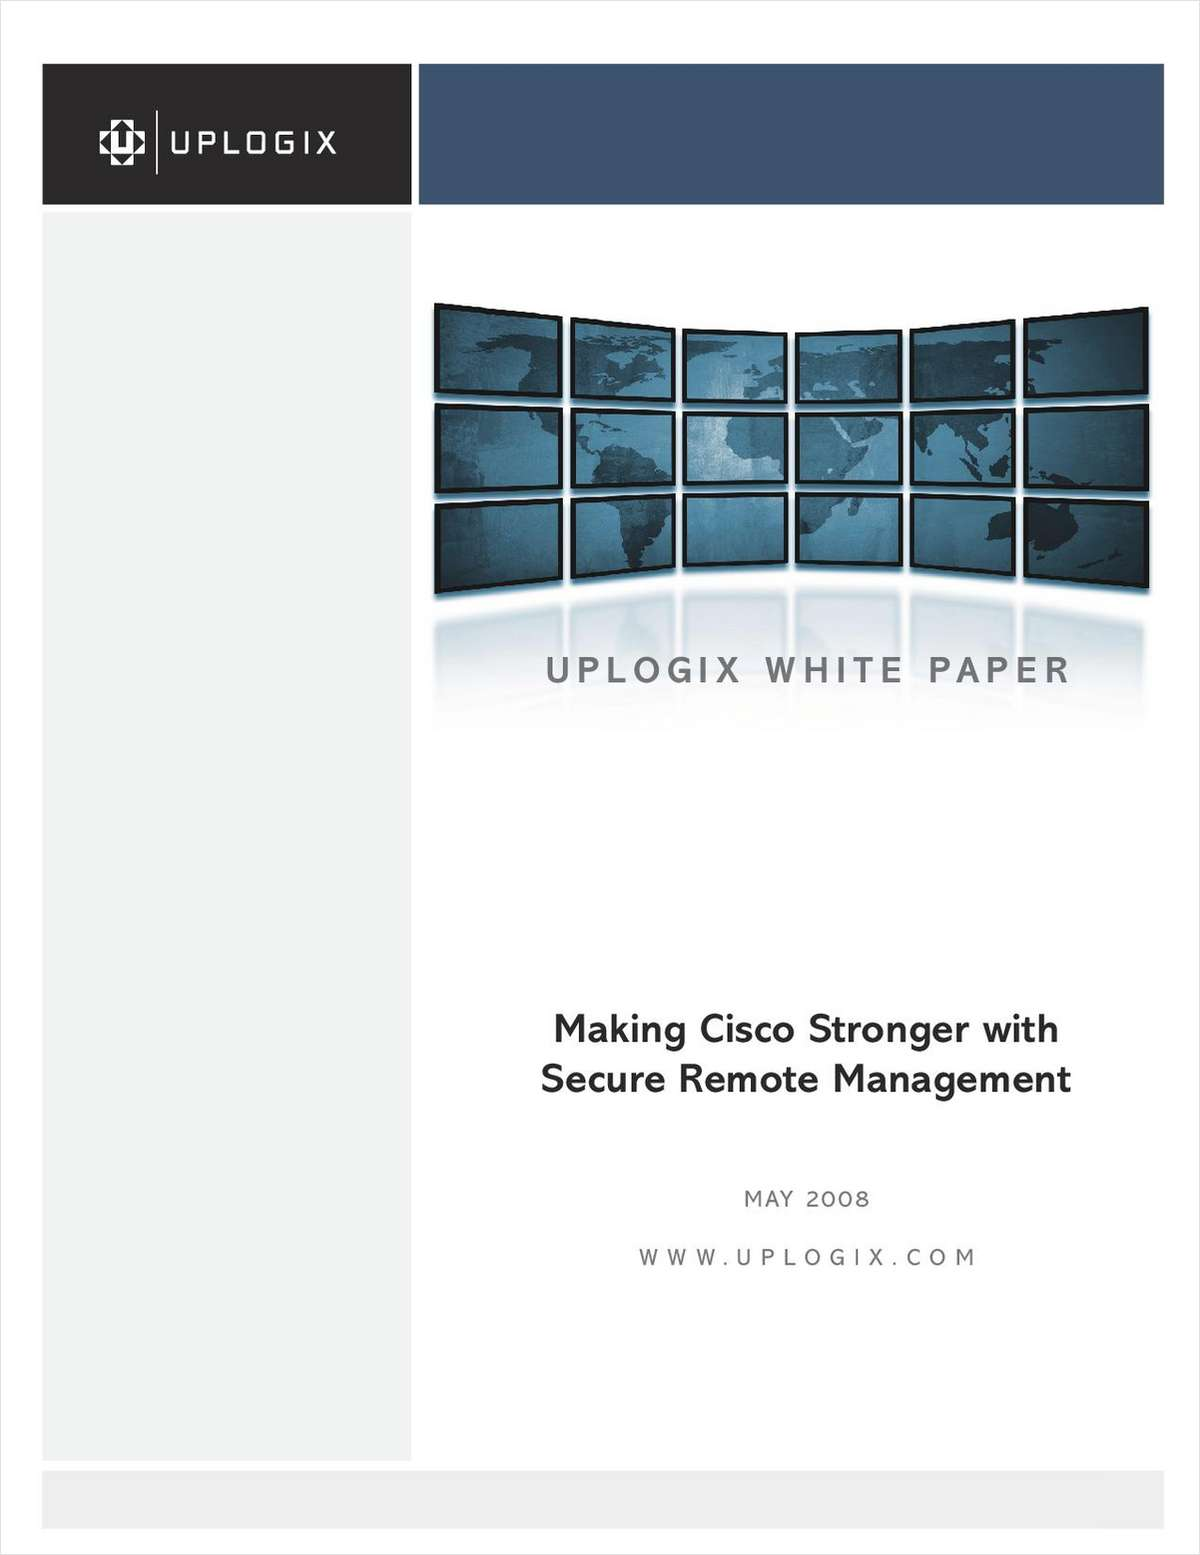 Make your Cisco Infrastructure Stronger: Secure Remote Management